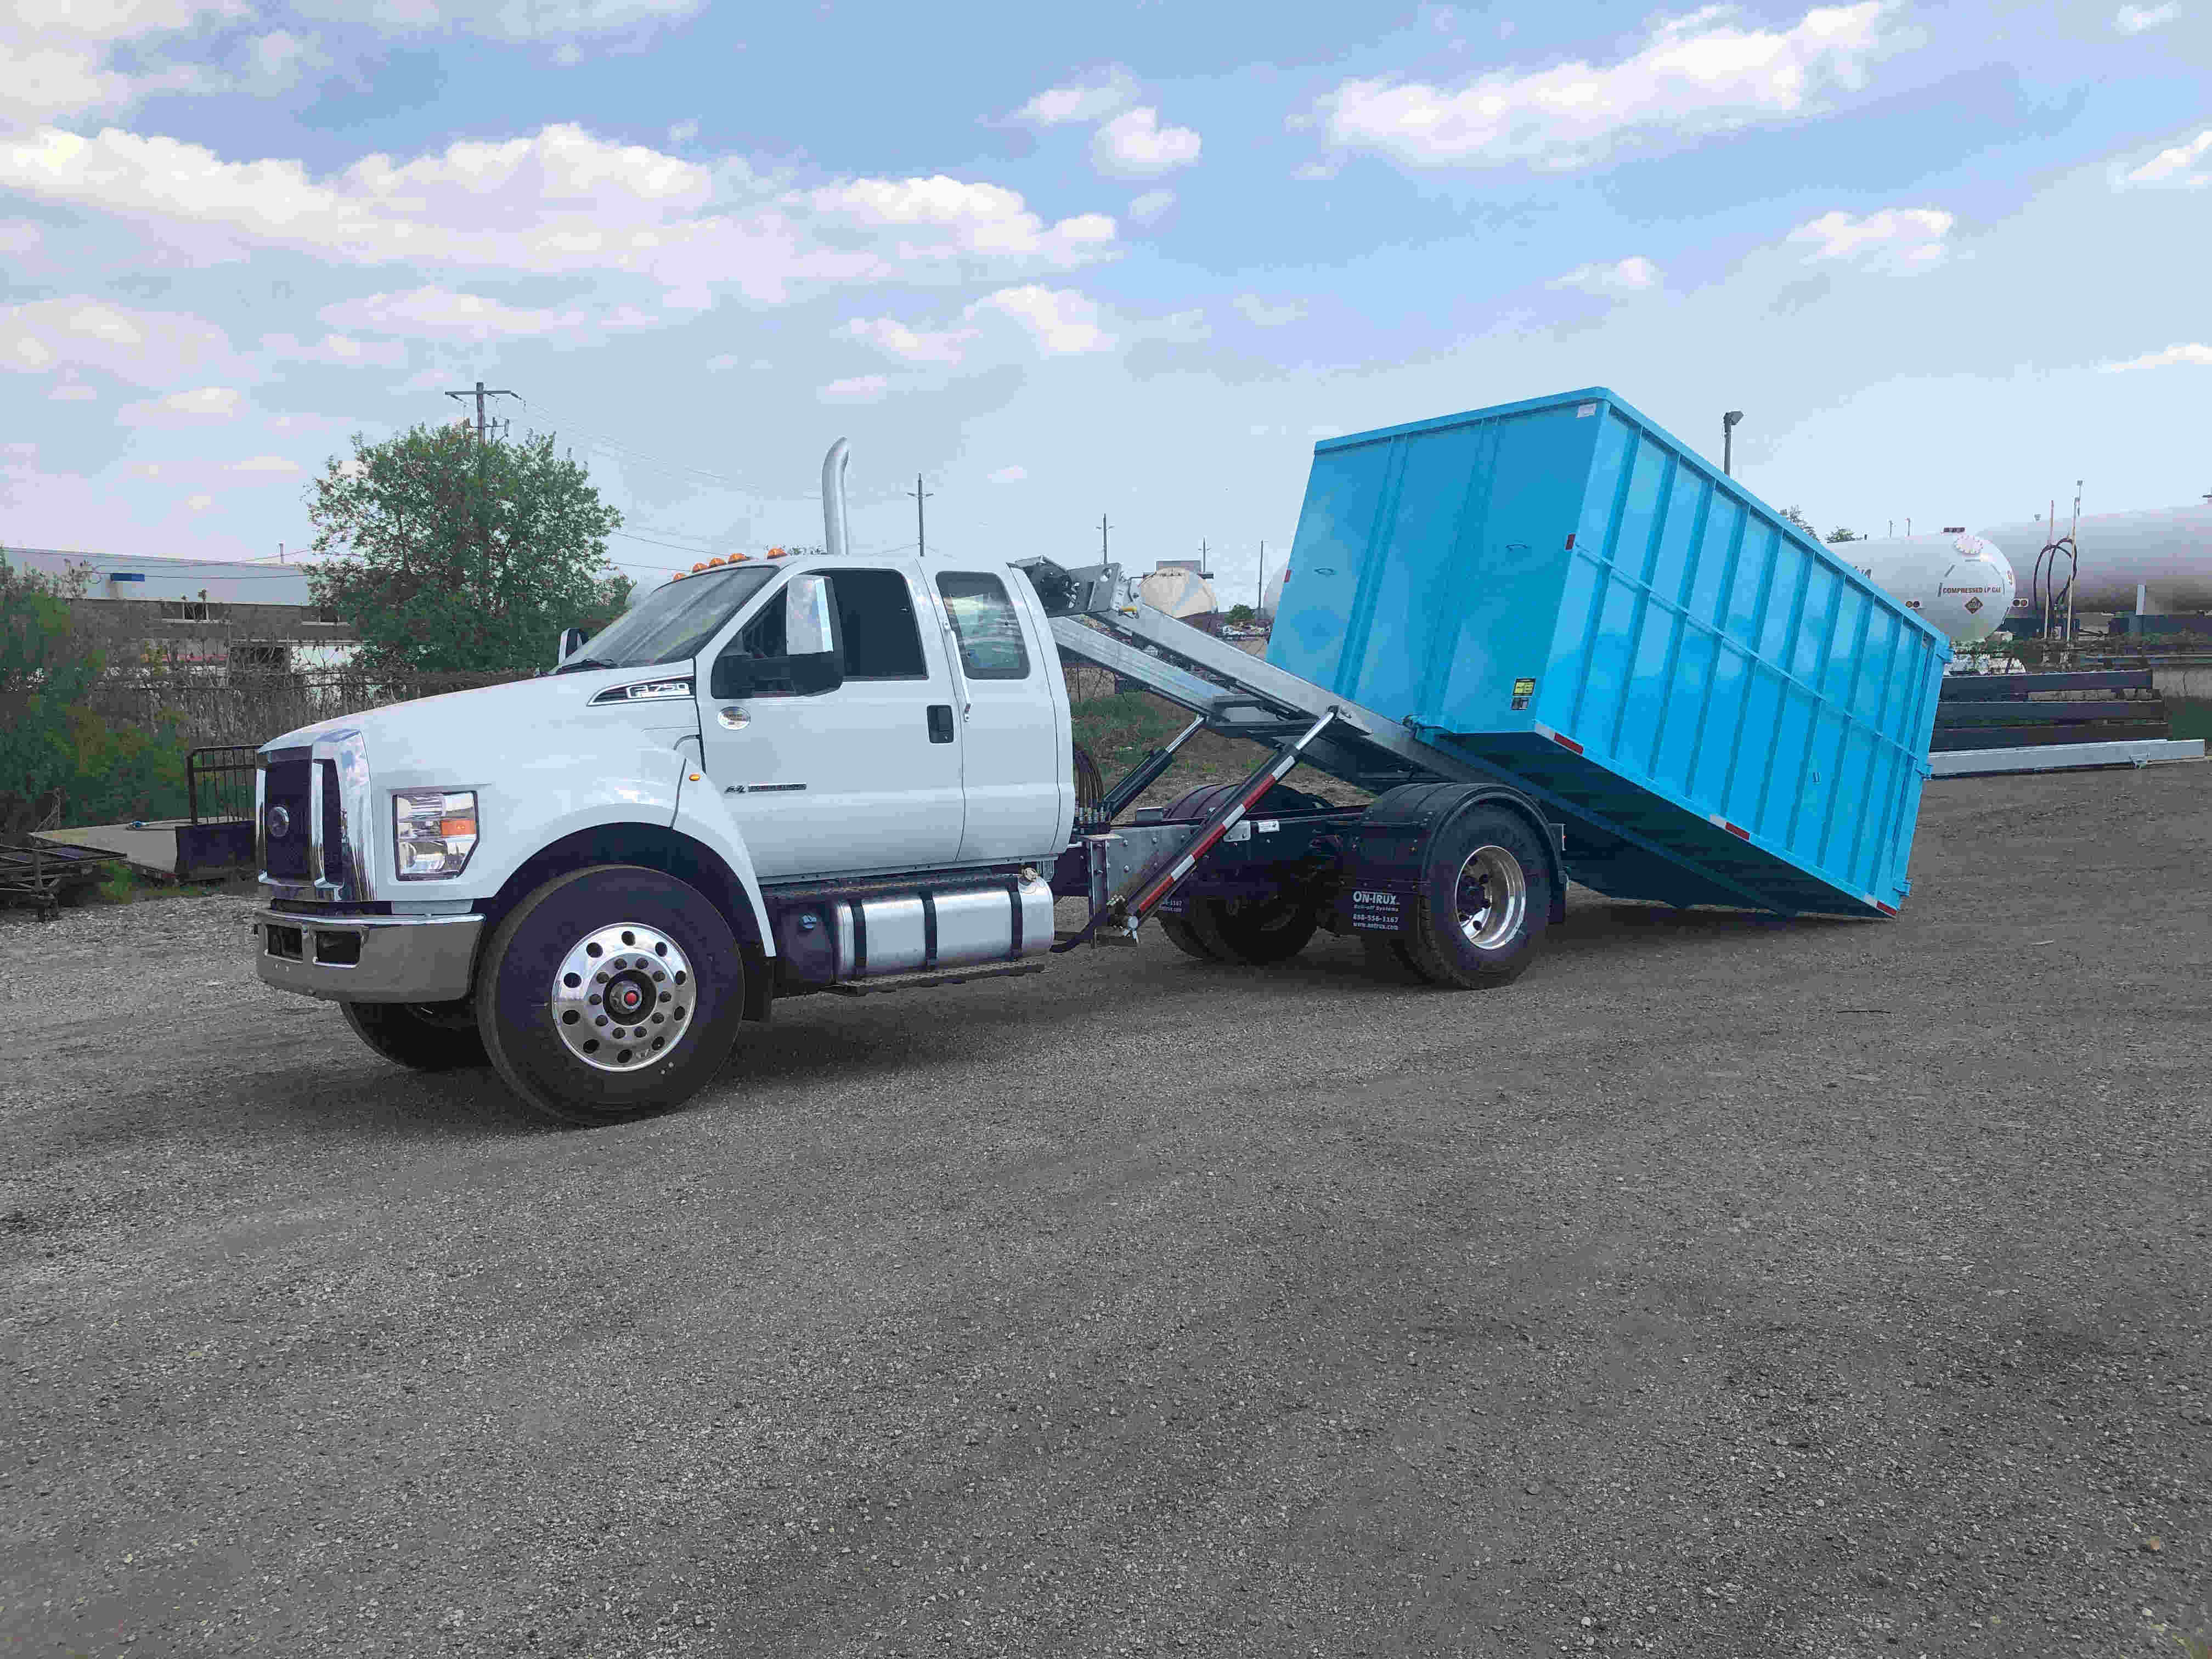 2021 Ford F750 12 On Trux System White (19)